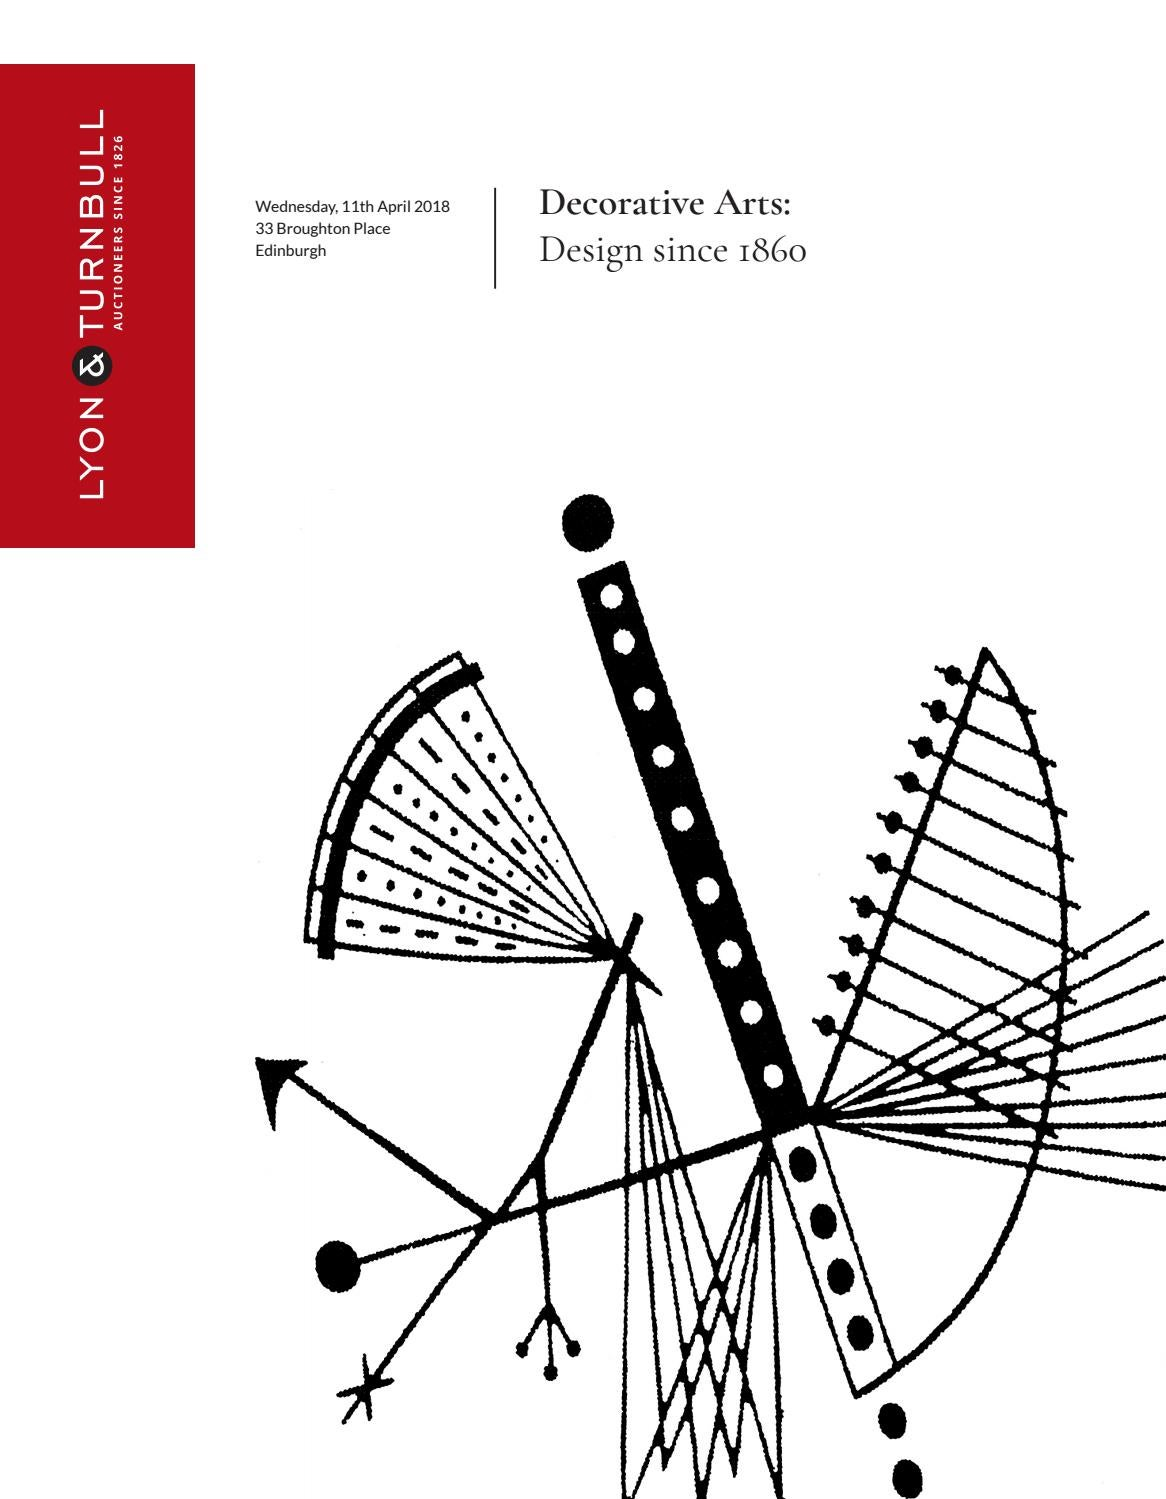 518 Decorative Arts Design since 1860 by Lyon & Turnbull issuu